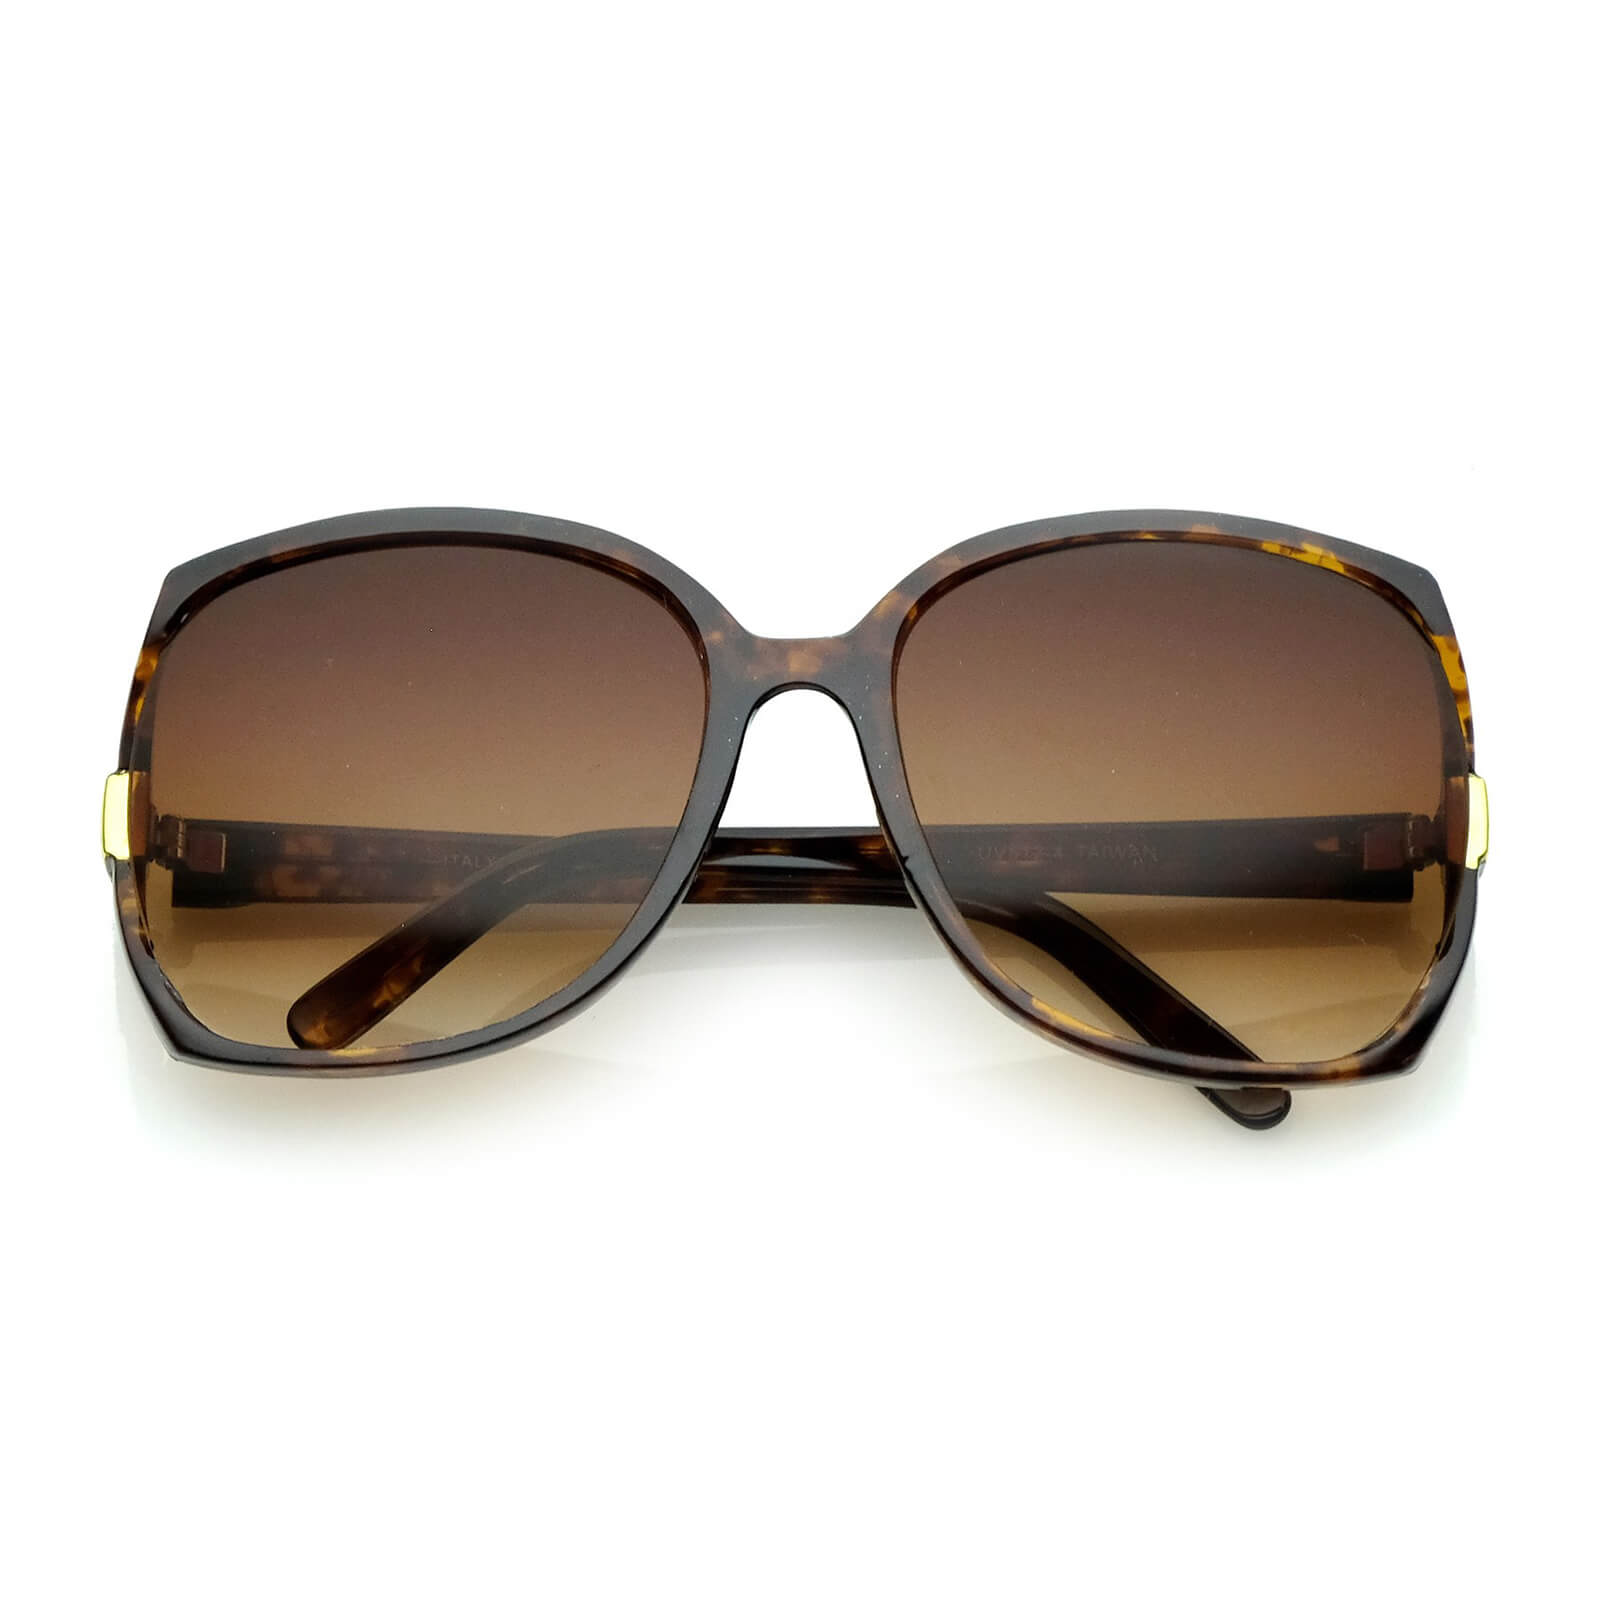 Oversized Butterfly Sunglasses - Fashion Sunglasses